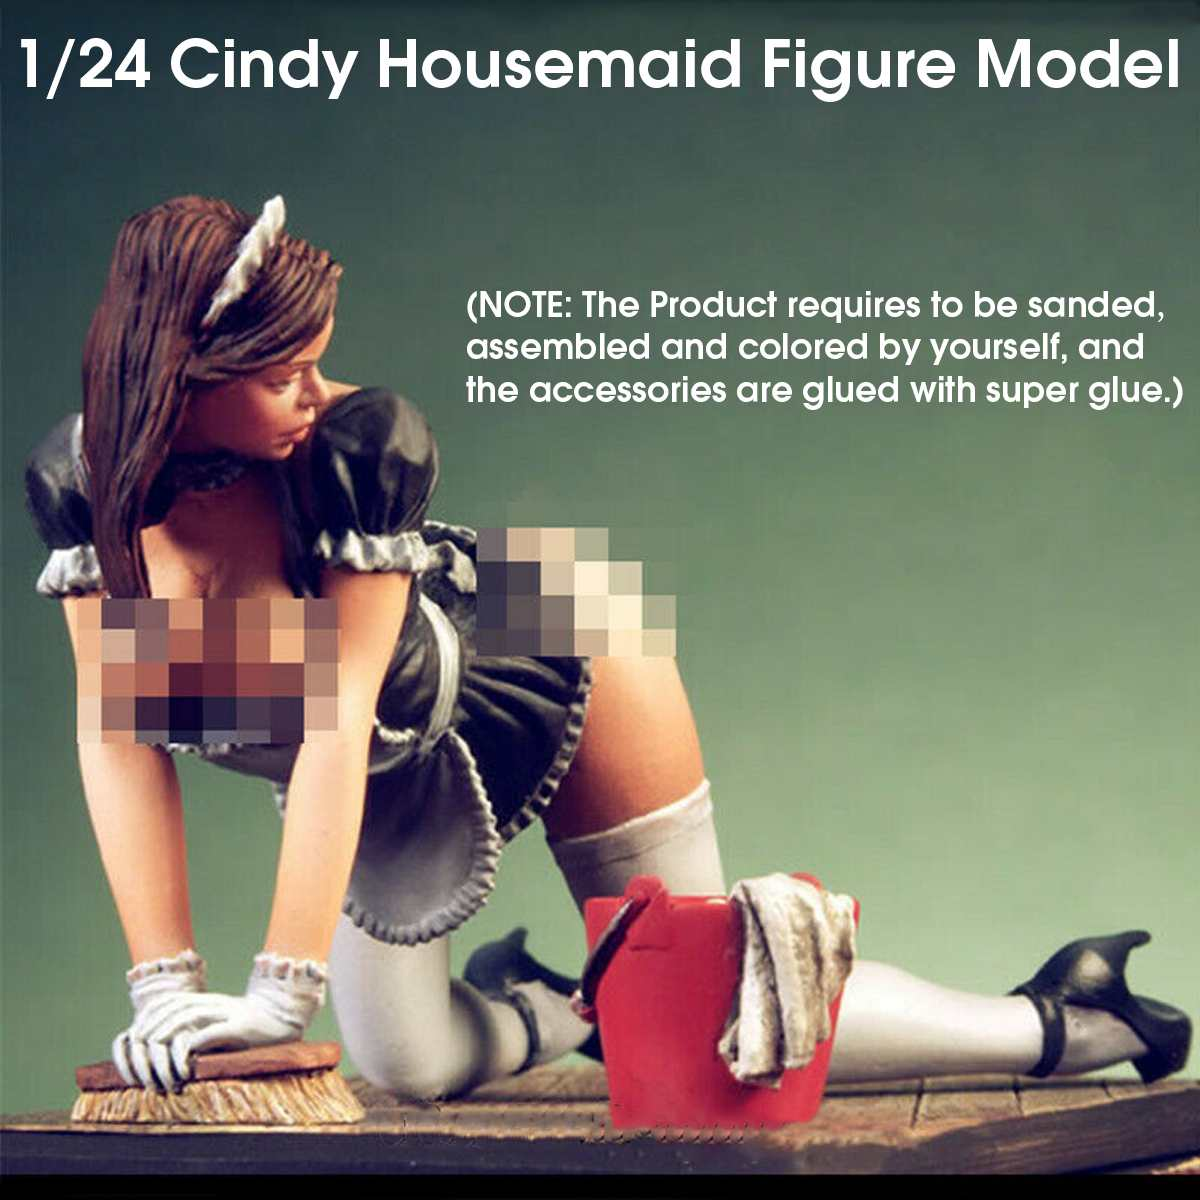 NEW <font><b>1/24</b></font> Scale Cindy Housemaid Cindy Maid Figure <font><b>Resin</b></font> <font><b>Model</b></font> Figure Static <font><b>Model</b></font> <font><b>Kits</b></font> Unpainted Unassembled image